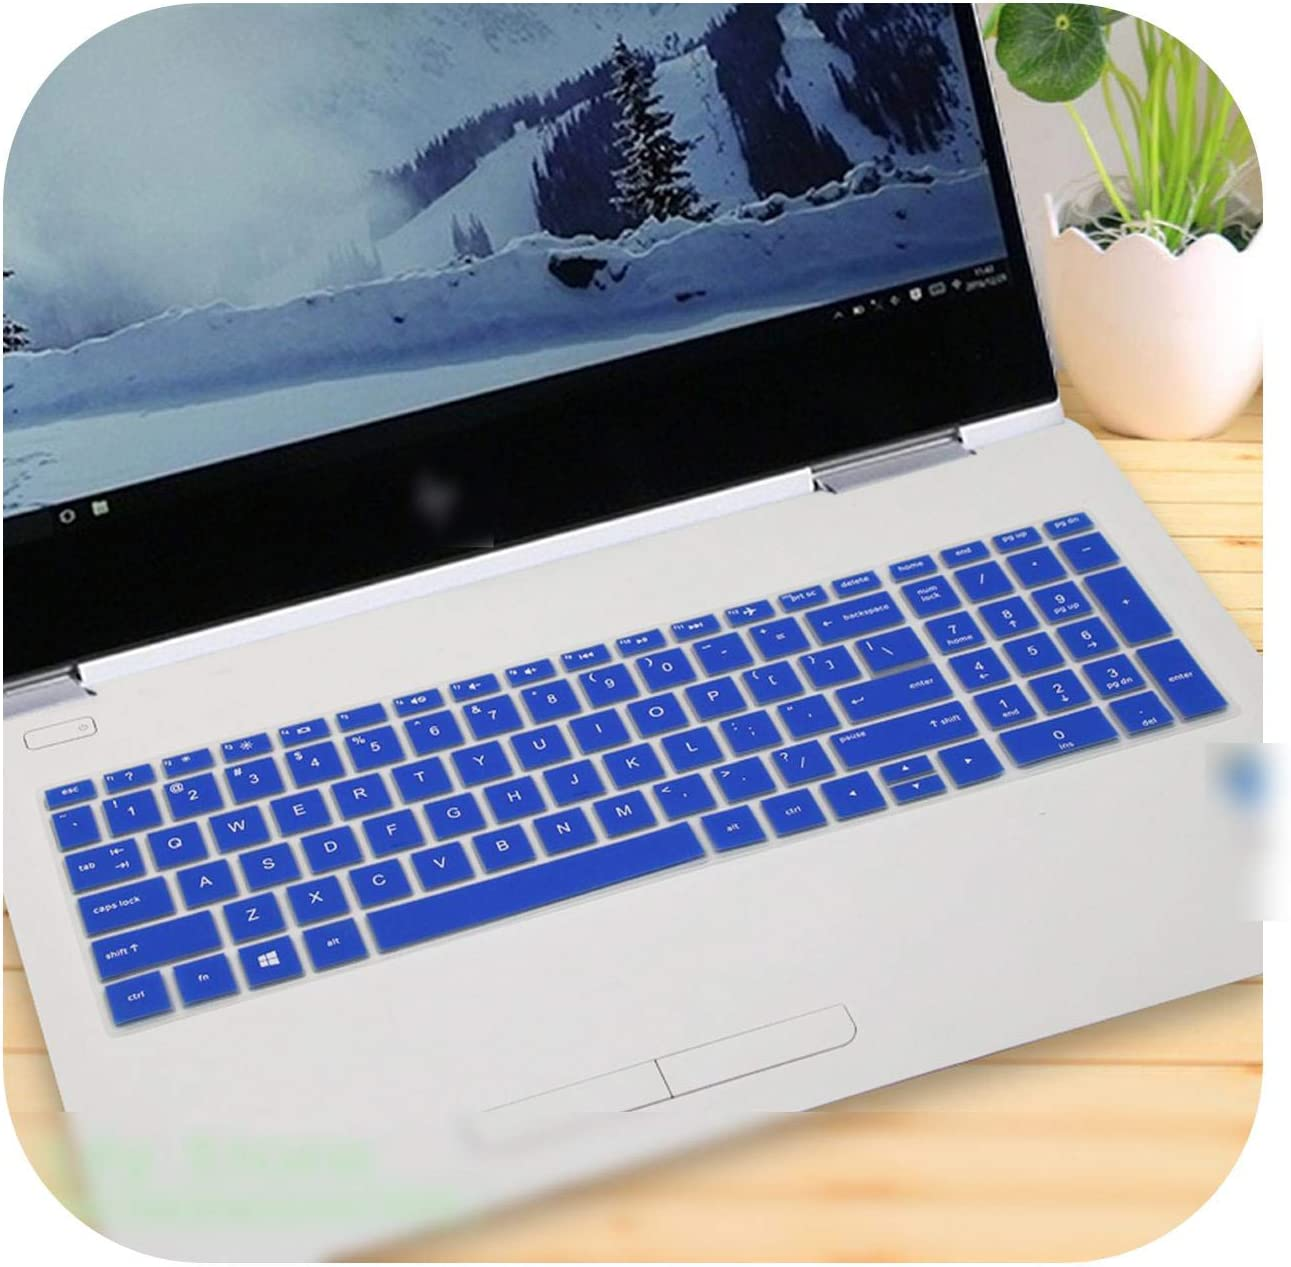 Laptop Keyboard Cover Protector for Hp Envy X360 15-Cn0006Tx Cn0007Tx 15-Cn0008Tx Cn0007Na Cn0009X 15-Cn Series Cn1000Ne 15.6''-Blue-